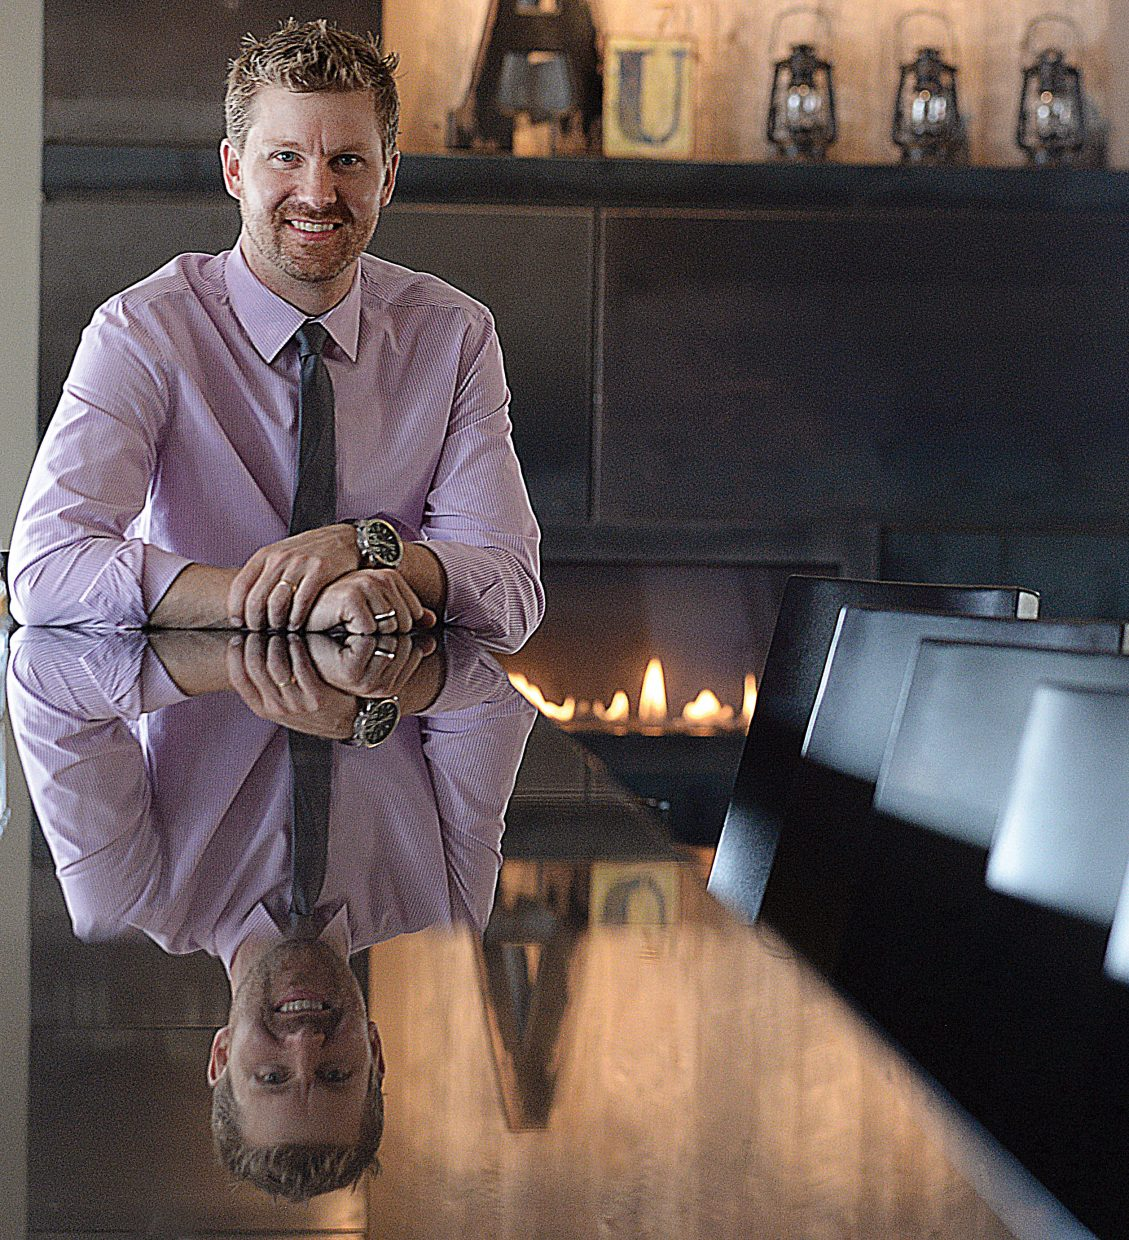 Phil Armstrong, owner of the new Aurum restaurant, plans to bring an entirely new dining experience to Steamboat Springs.